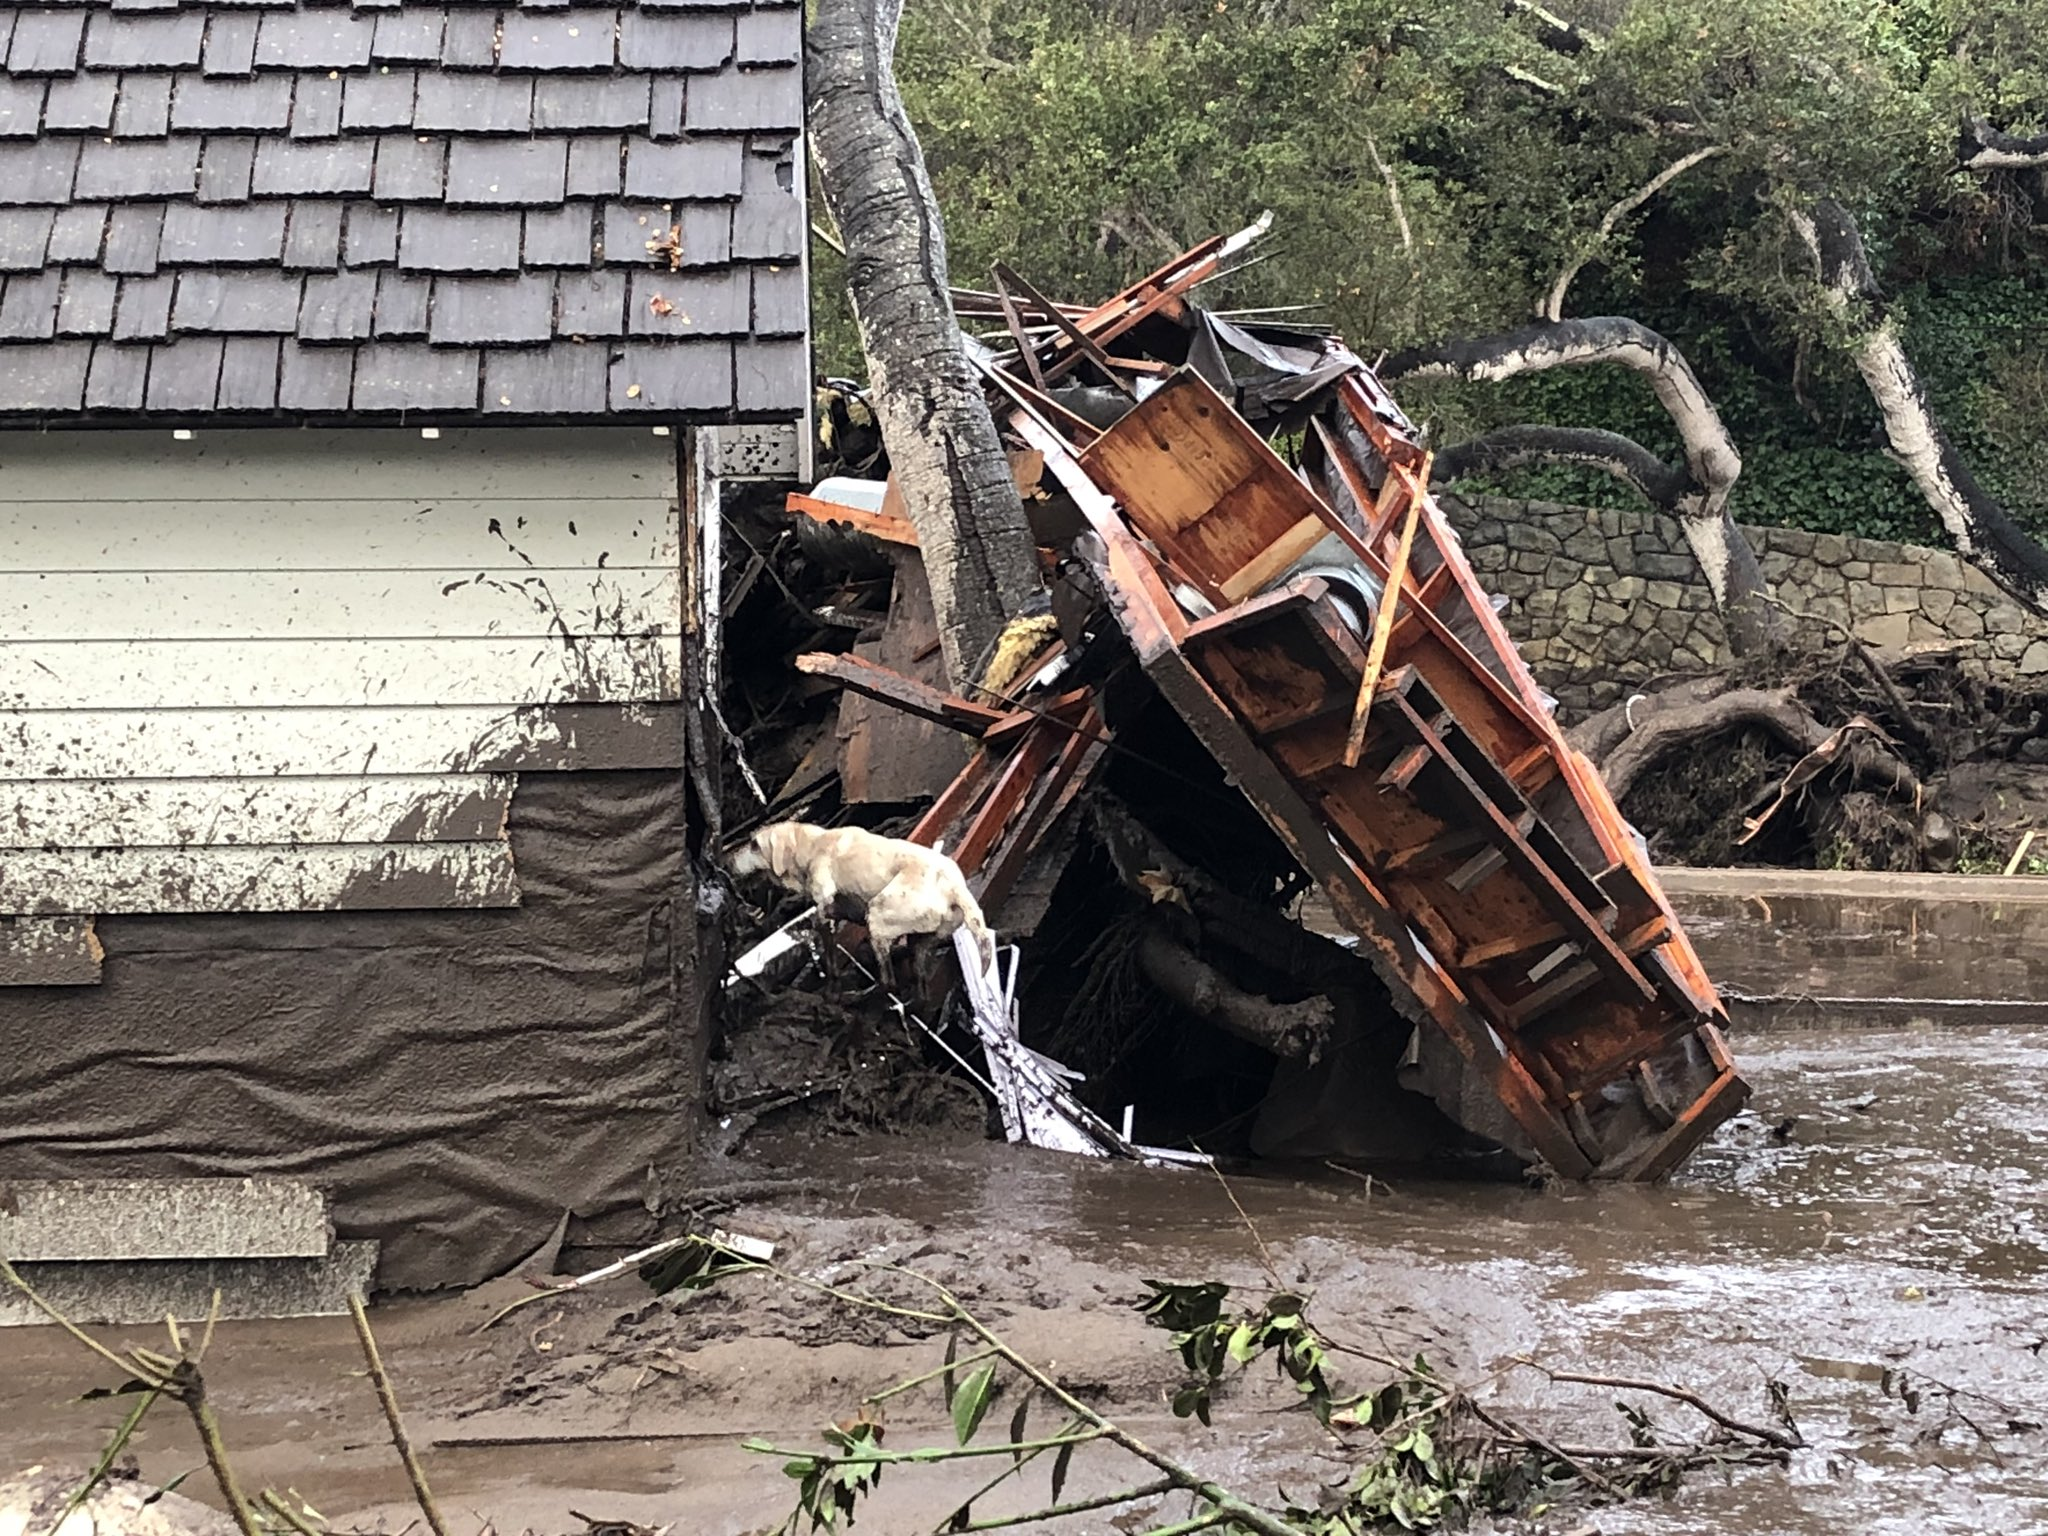 Santa Barbara County Fire Search Dog Reilly looks for victims in damaged and destroyed homes in Montecito following deadly runoff of mud and debris from heavy rain overnight. (Photo: Mike Eliason / Santa Barbara County Fire)